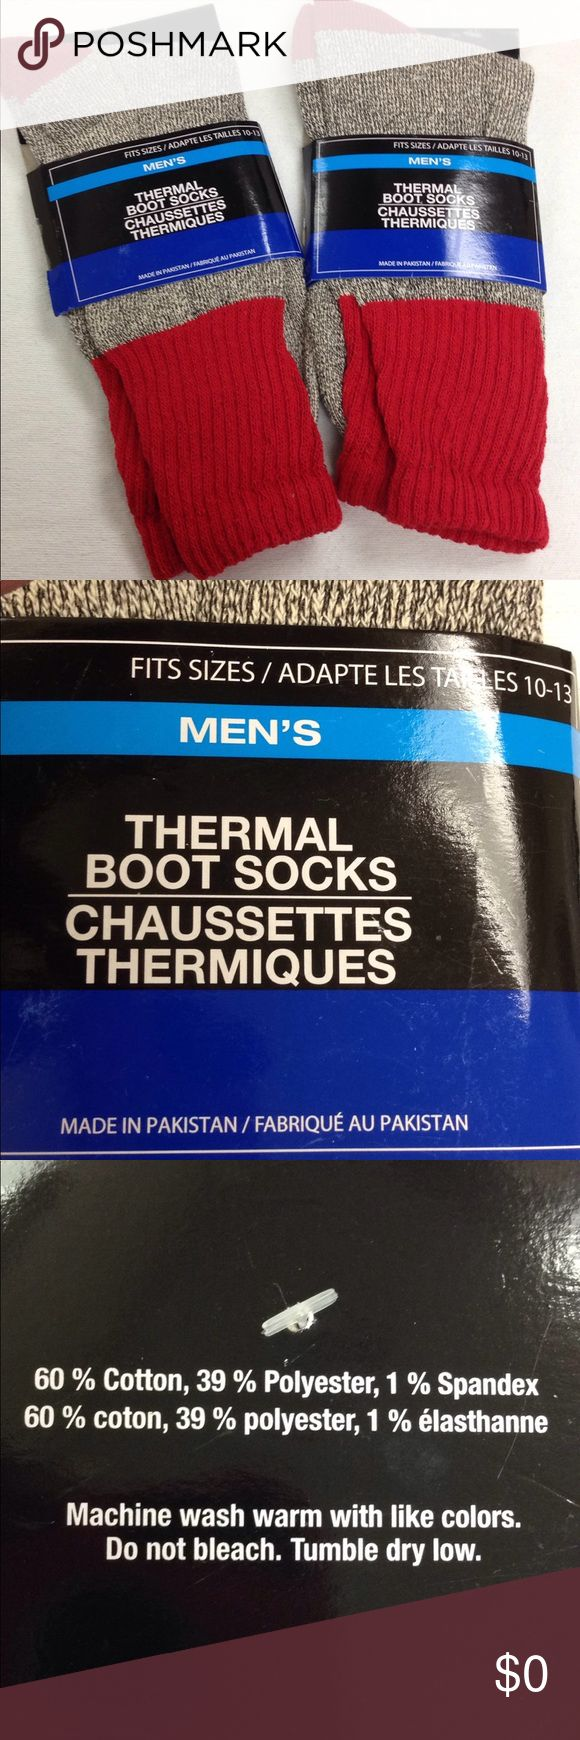 🌴NEW LISTING🌴 Men's Thermal Boot Socks Cotton, polyester and spandex. Size 10–13. (11/30) Underwear & Socks Casual Socks